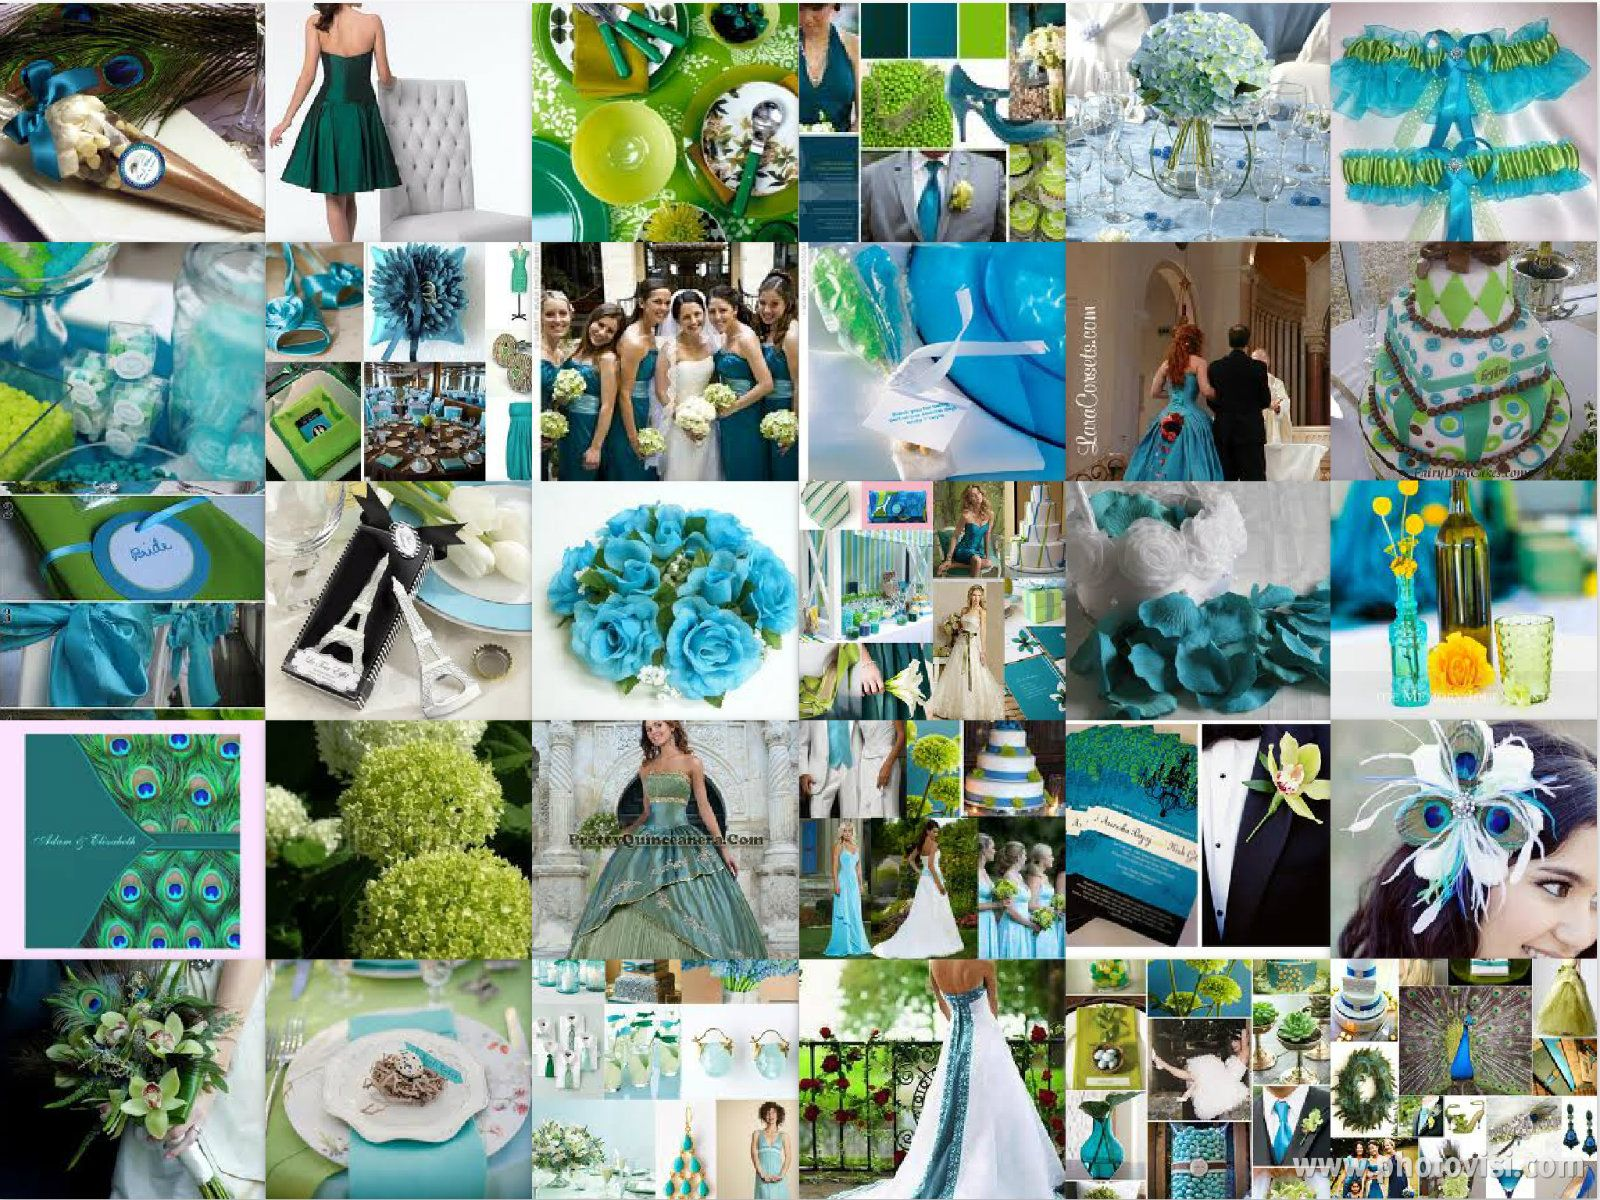 wedding colors that complement emerald green | Teal | Green | Turquoise |  Blue | Wedding